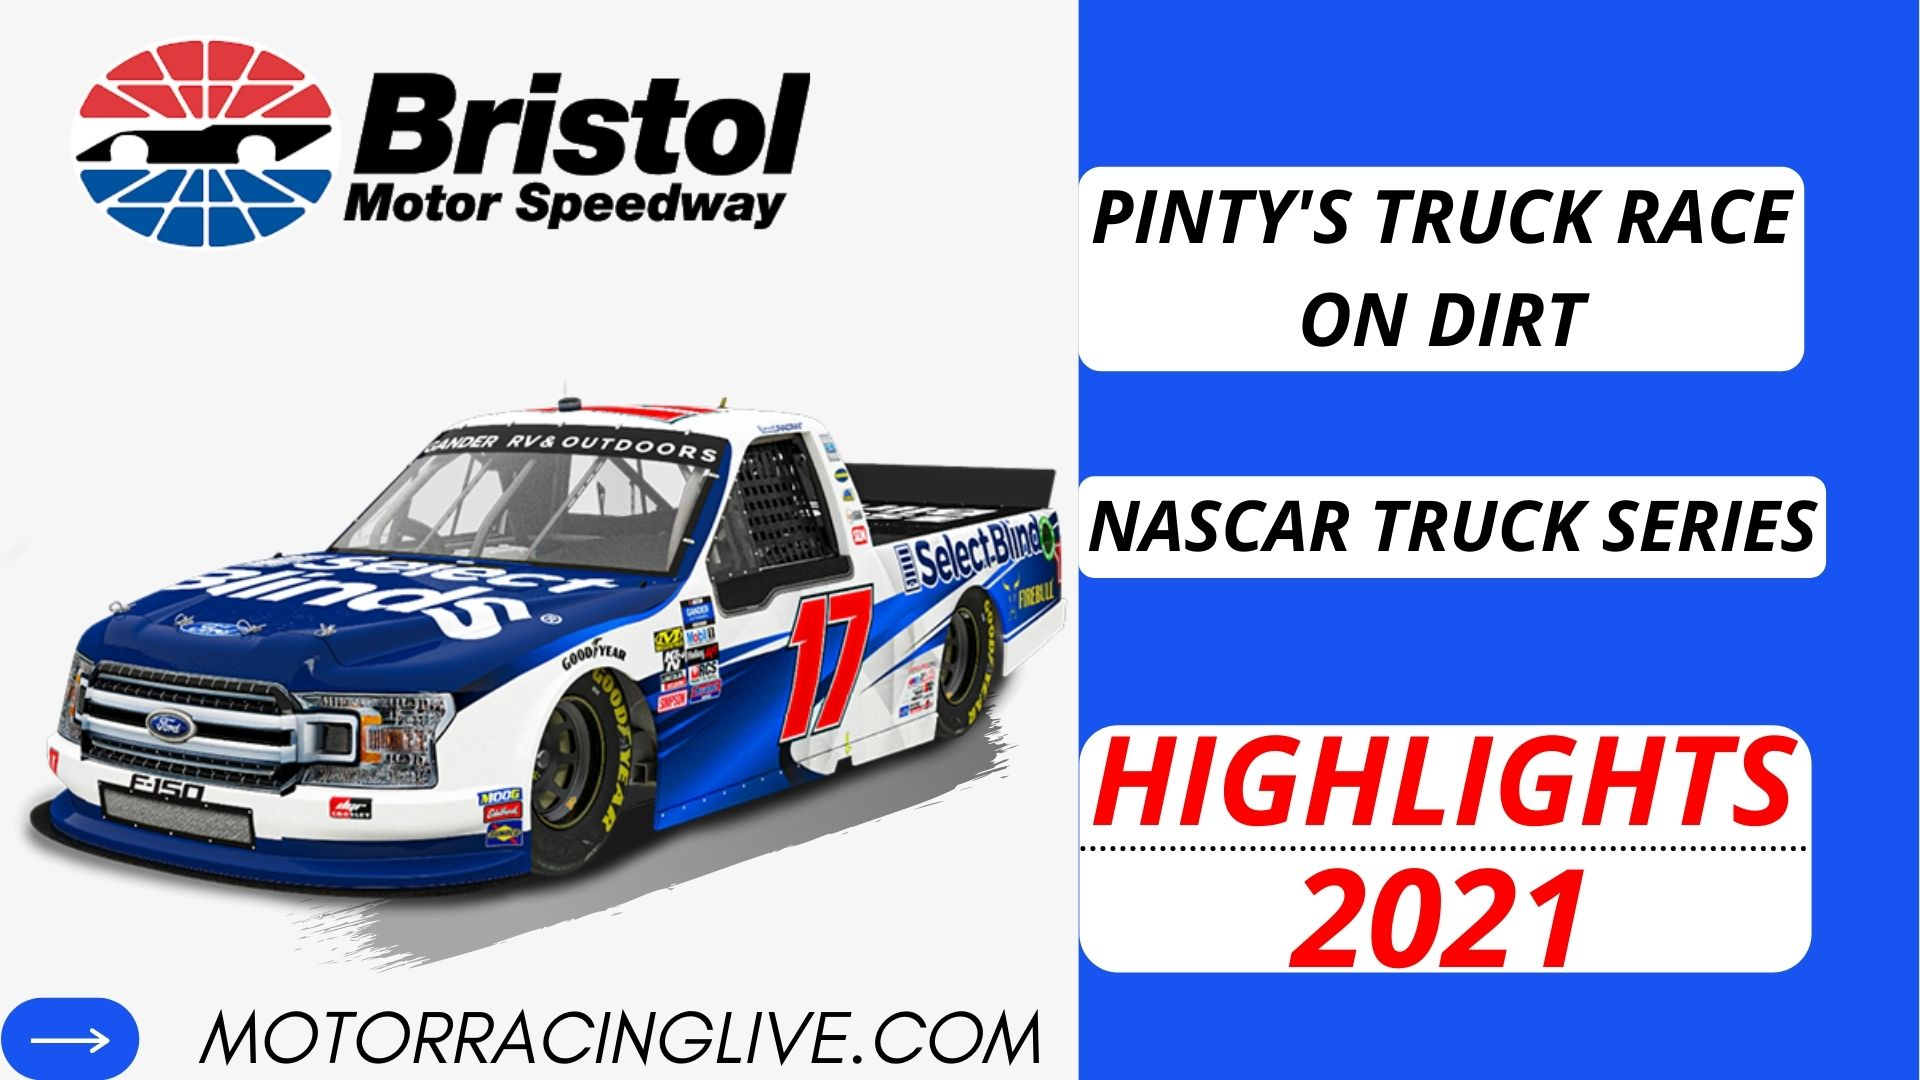 Pintys Truck Race On Dirt Highlights 2021 NASCAR Truck